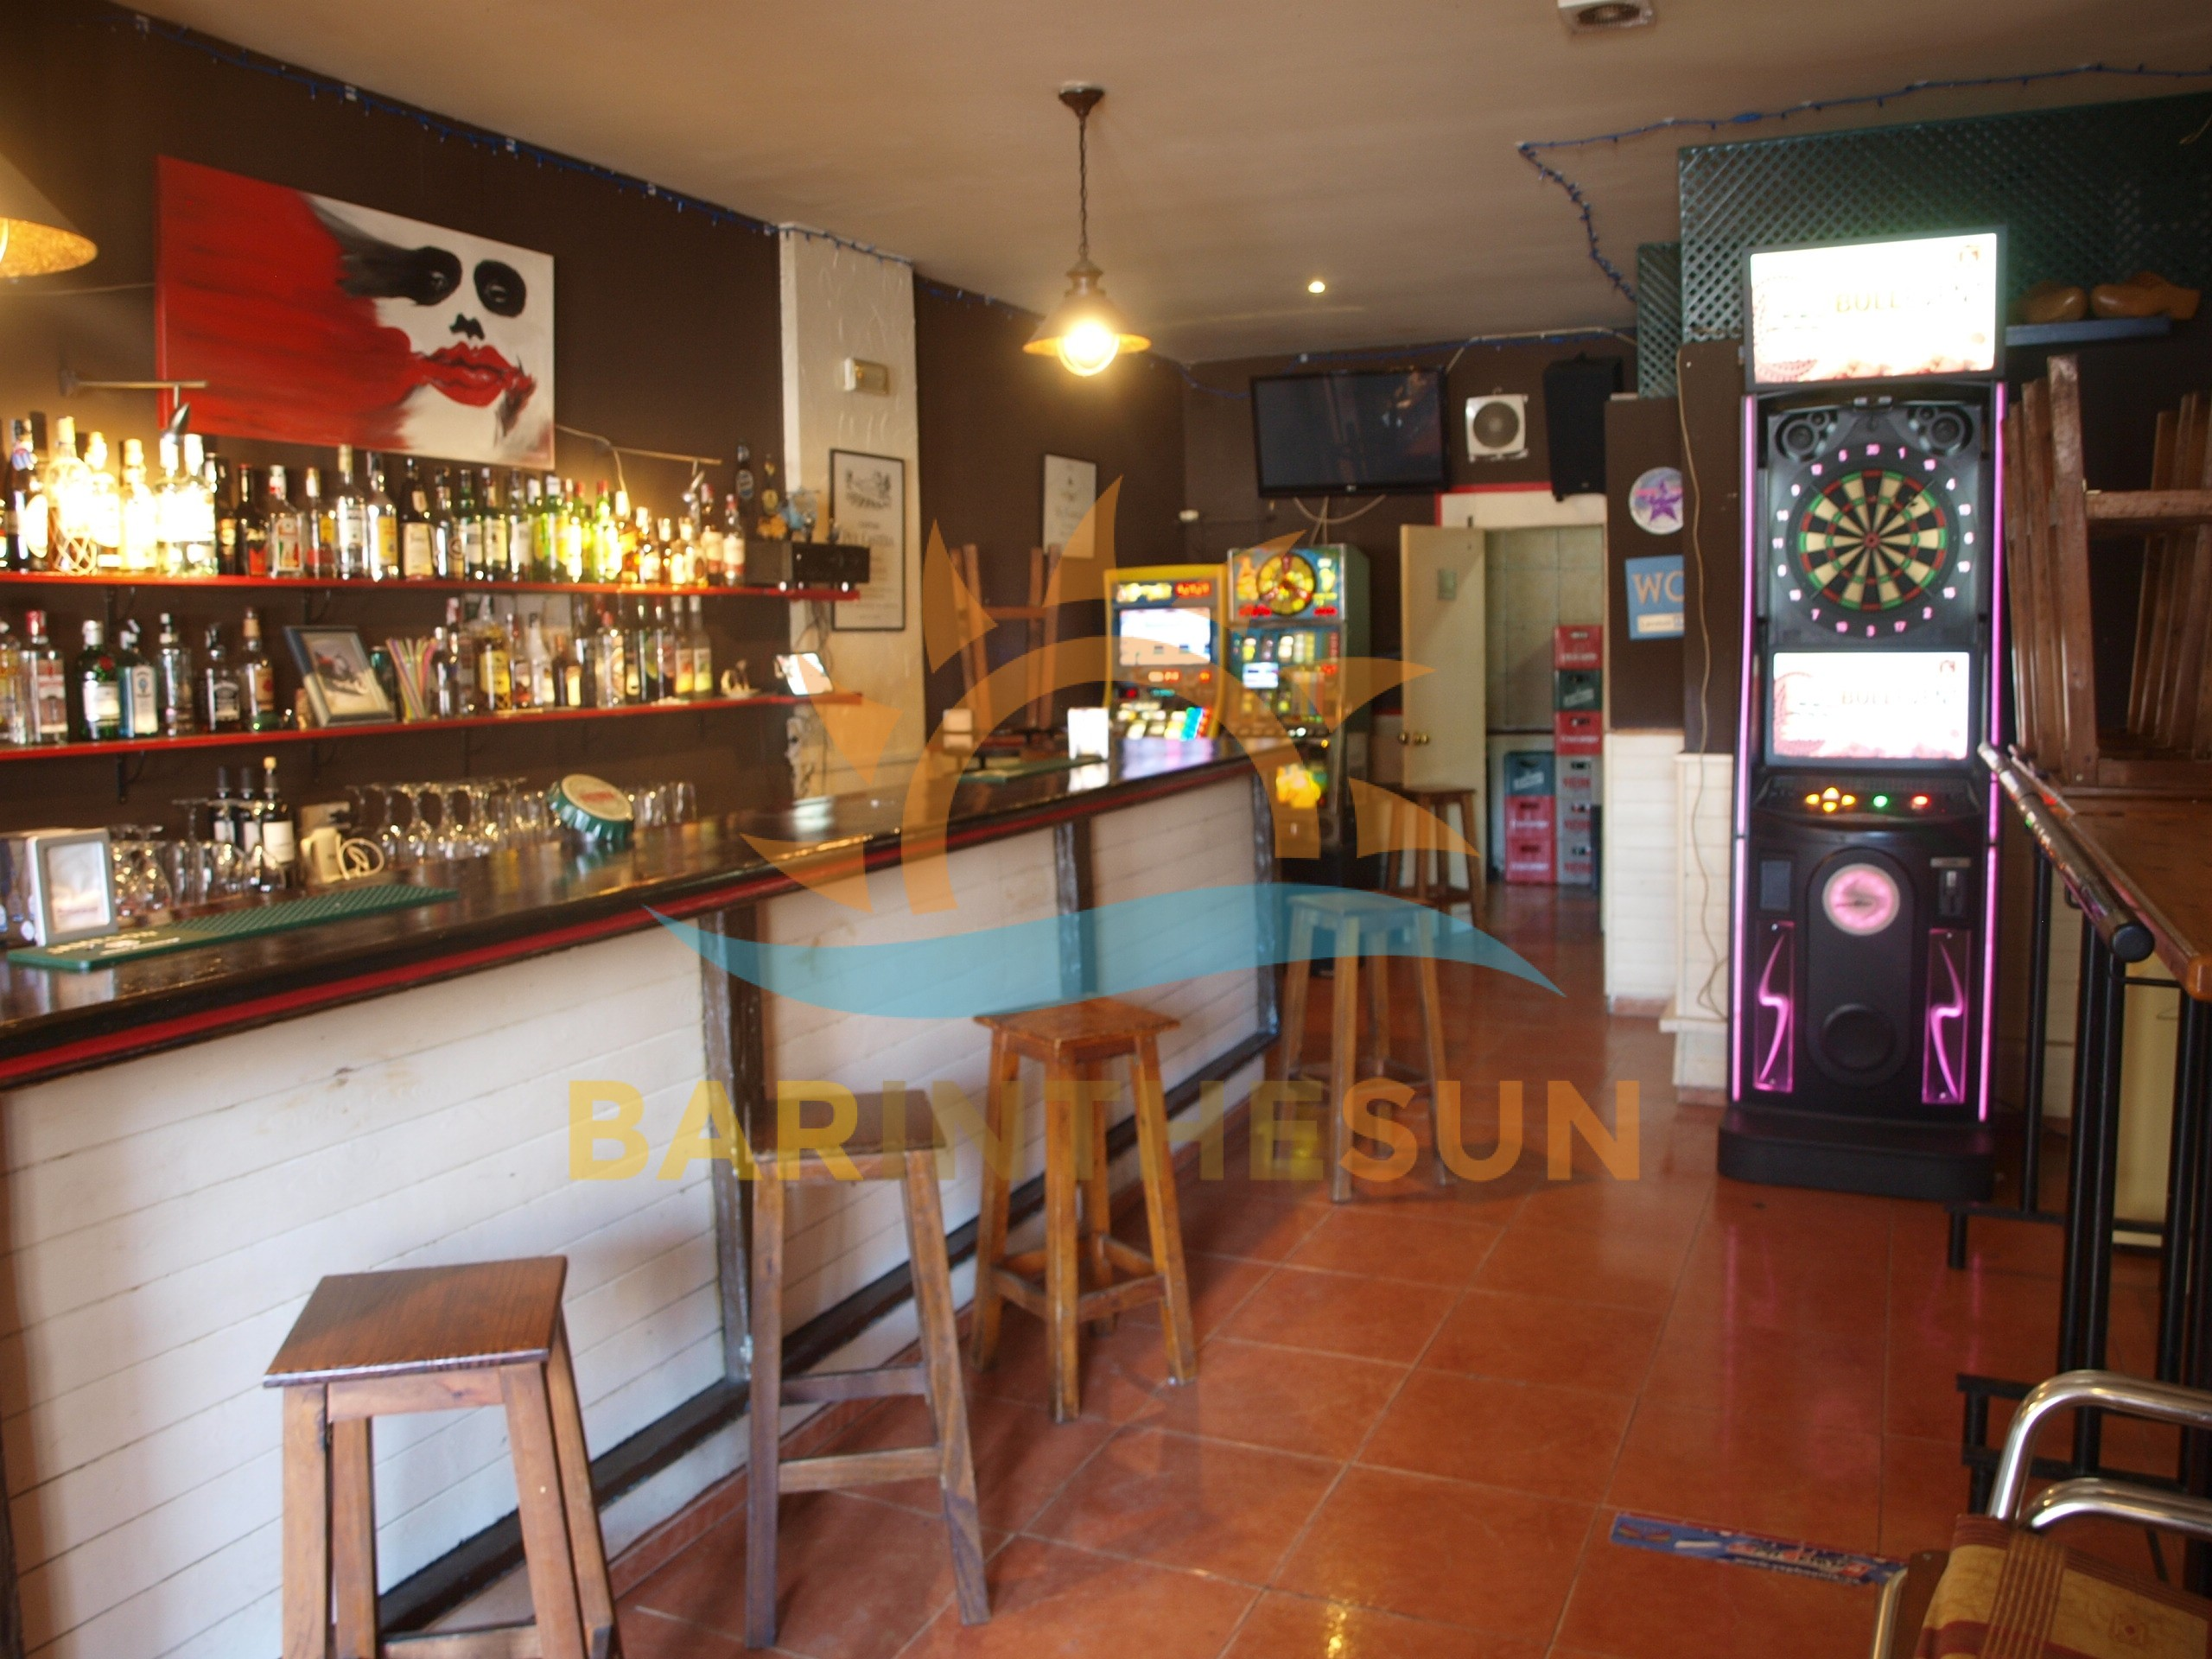 Drinks Bar For Sale in The Centre of Torremolinos, Bars For Sale in Spain